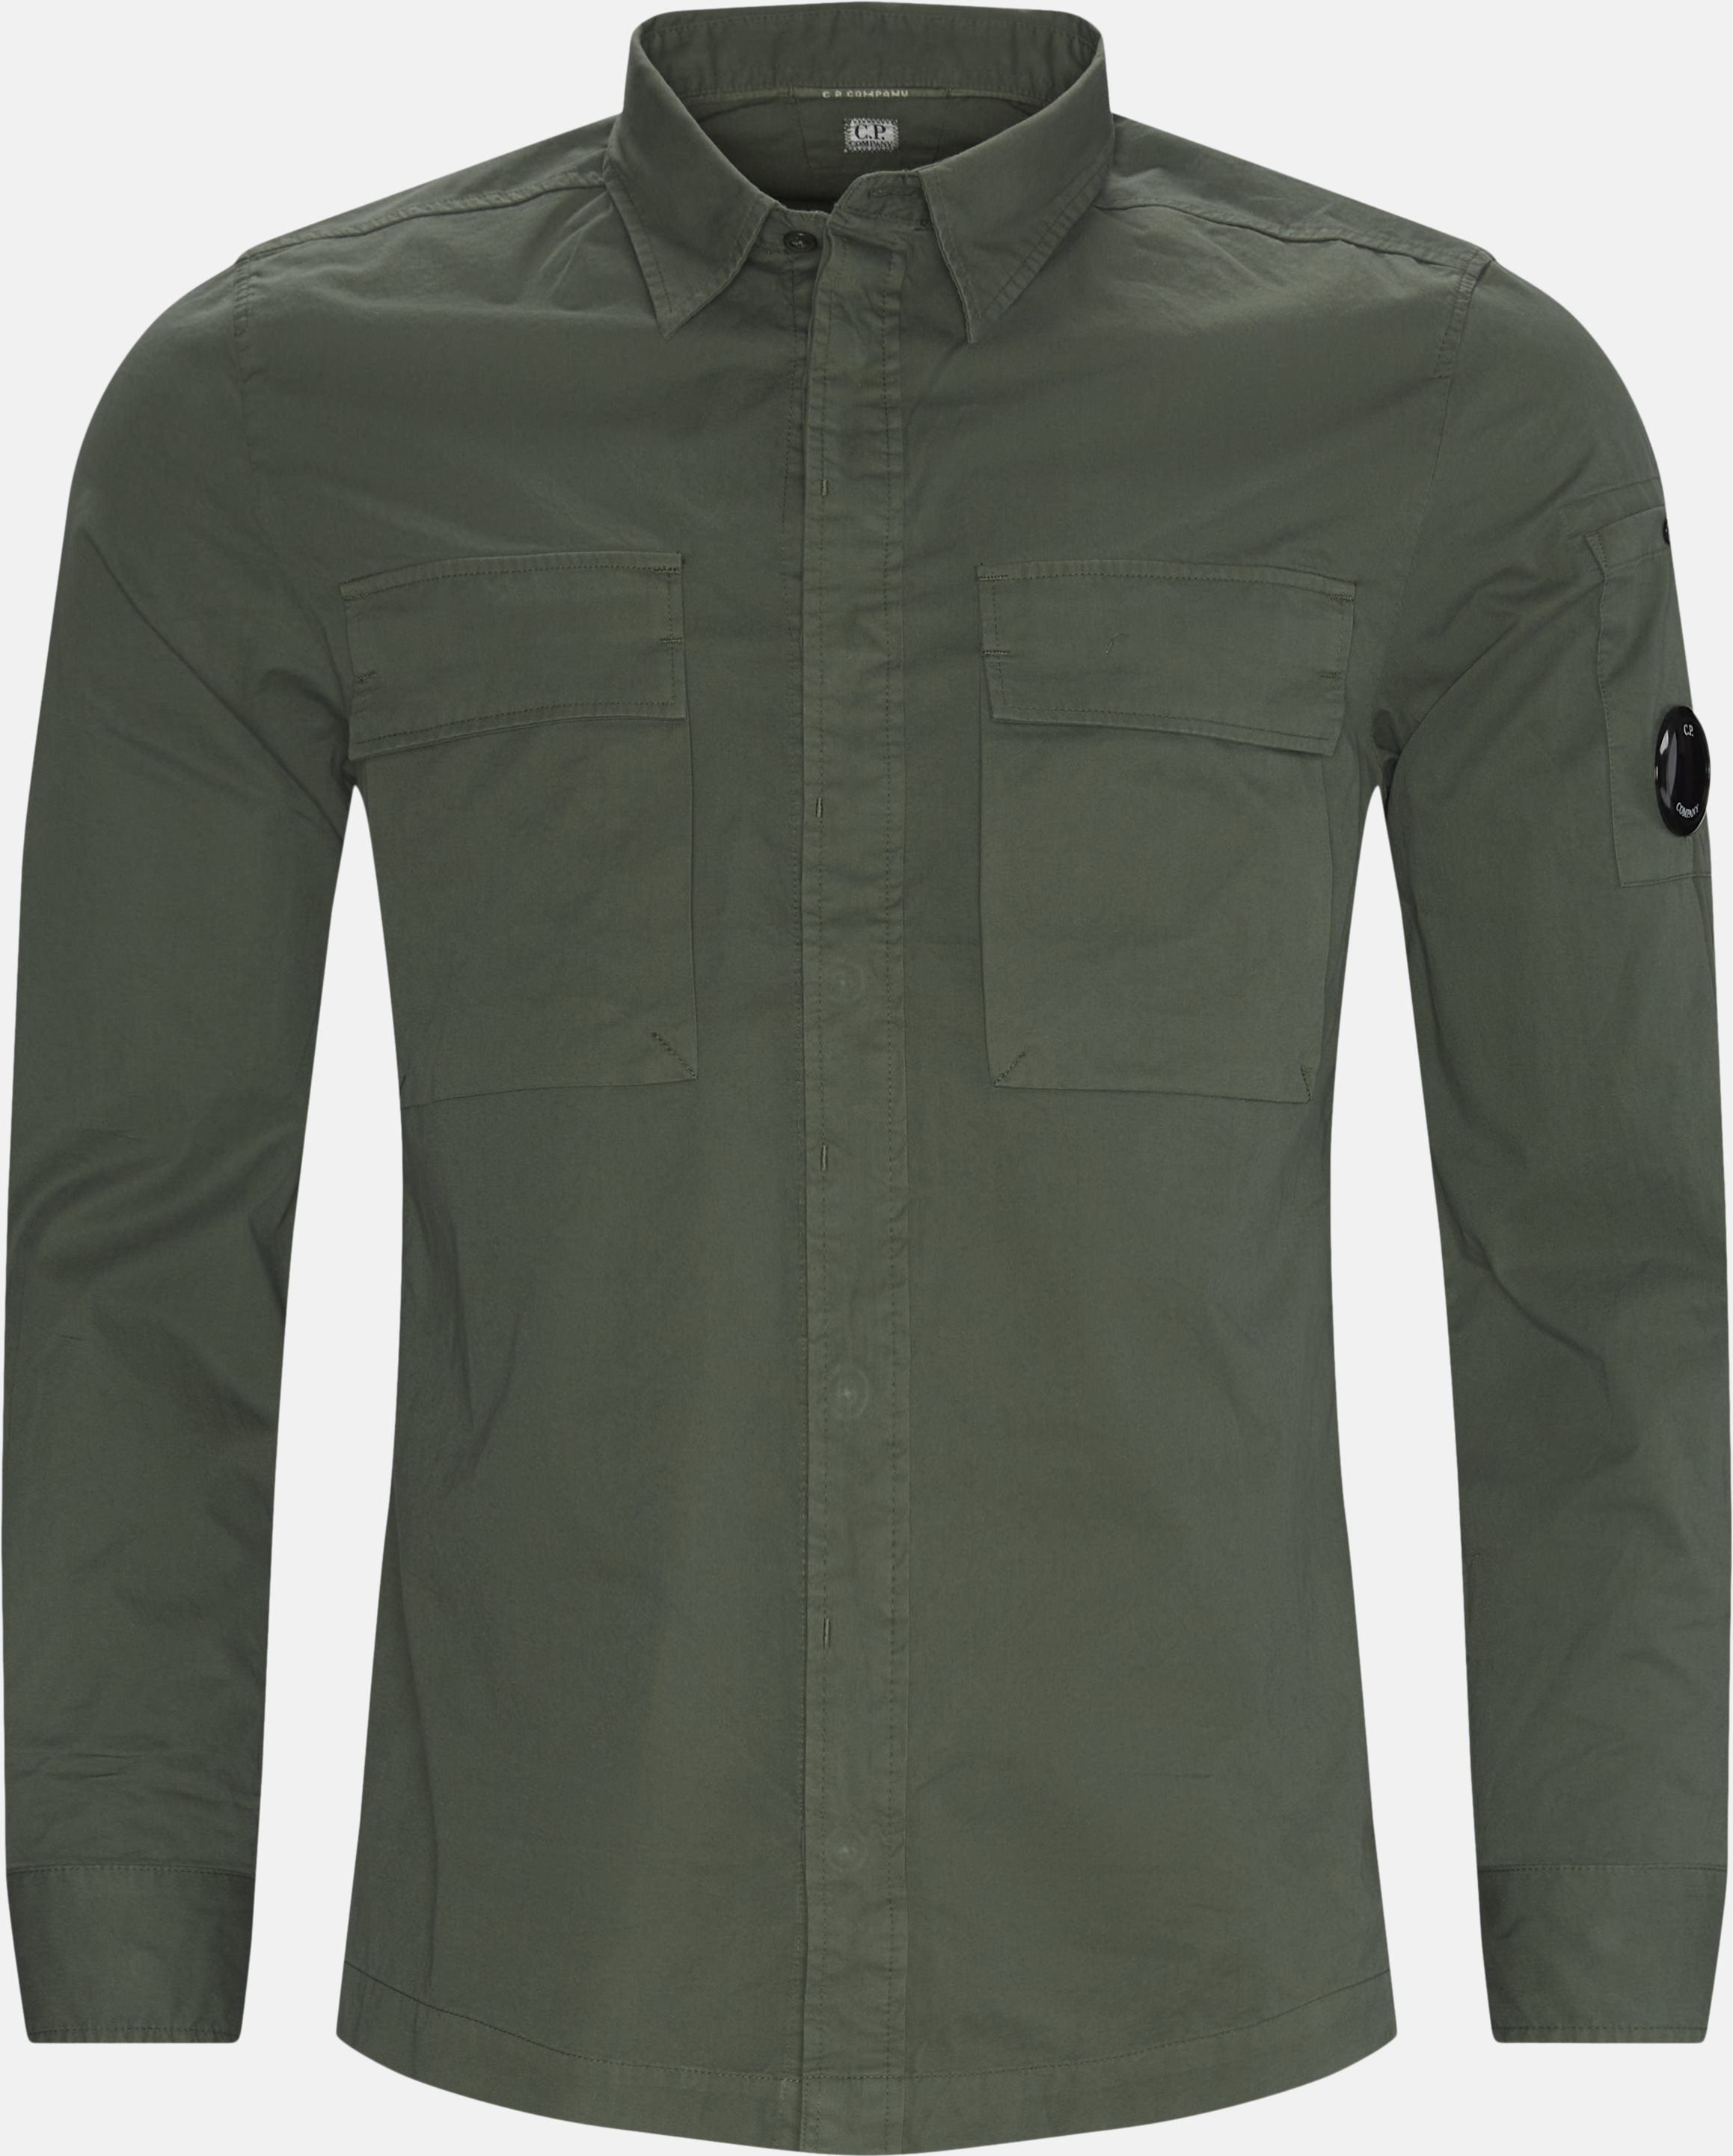 Emerized Gabardine Garment Dyed Shirt - Shirts - Regular - Green